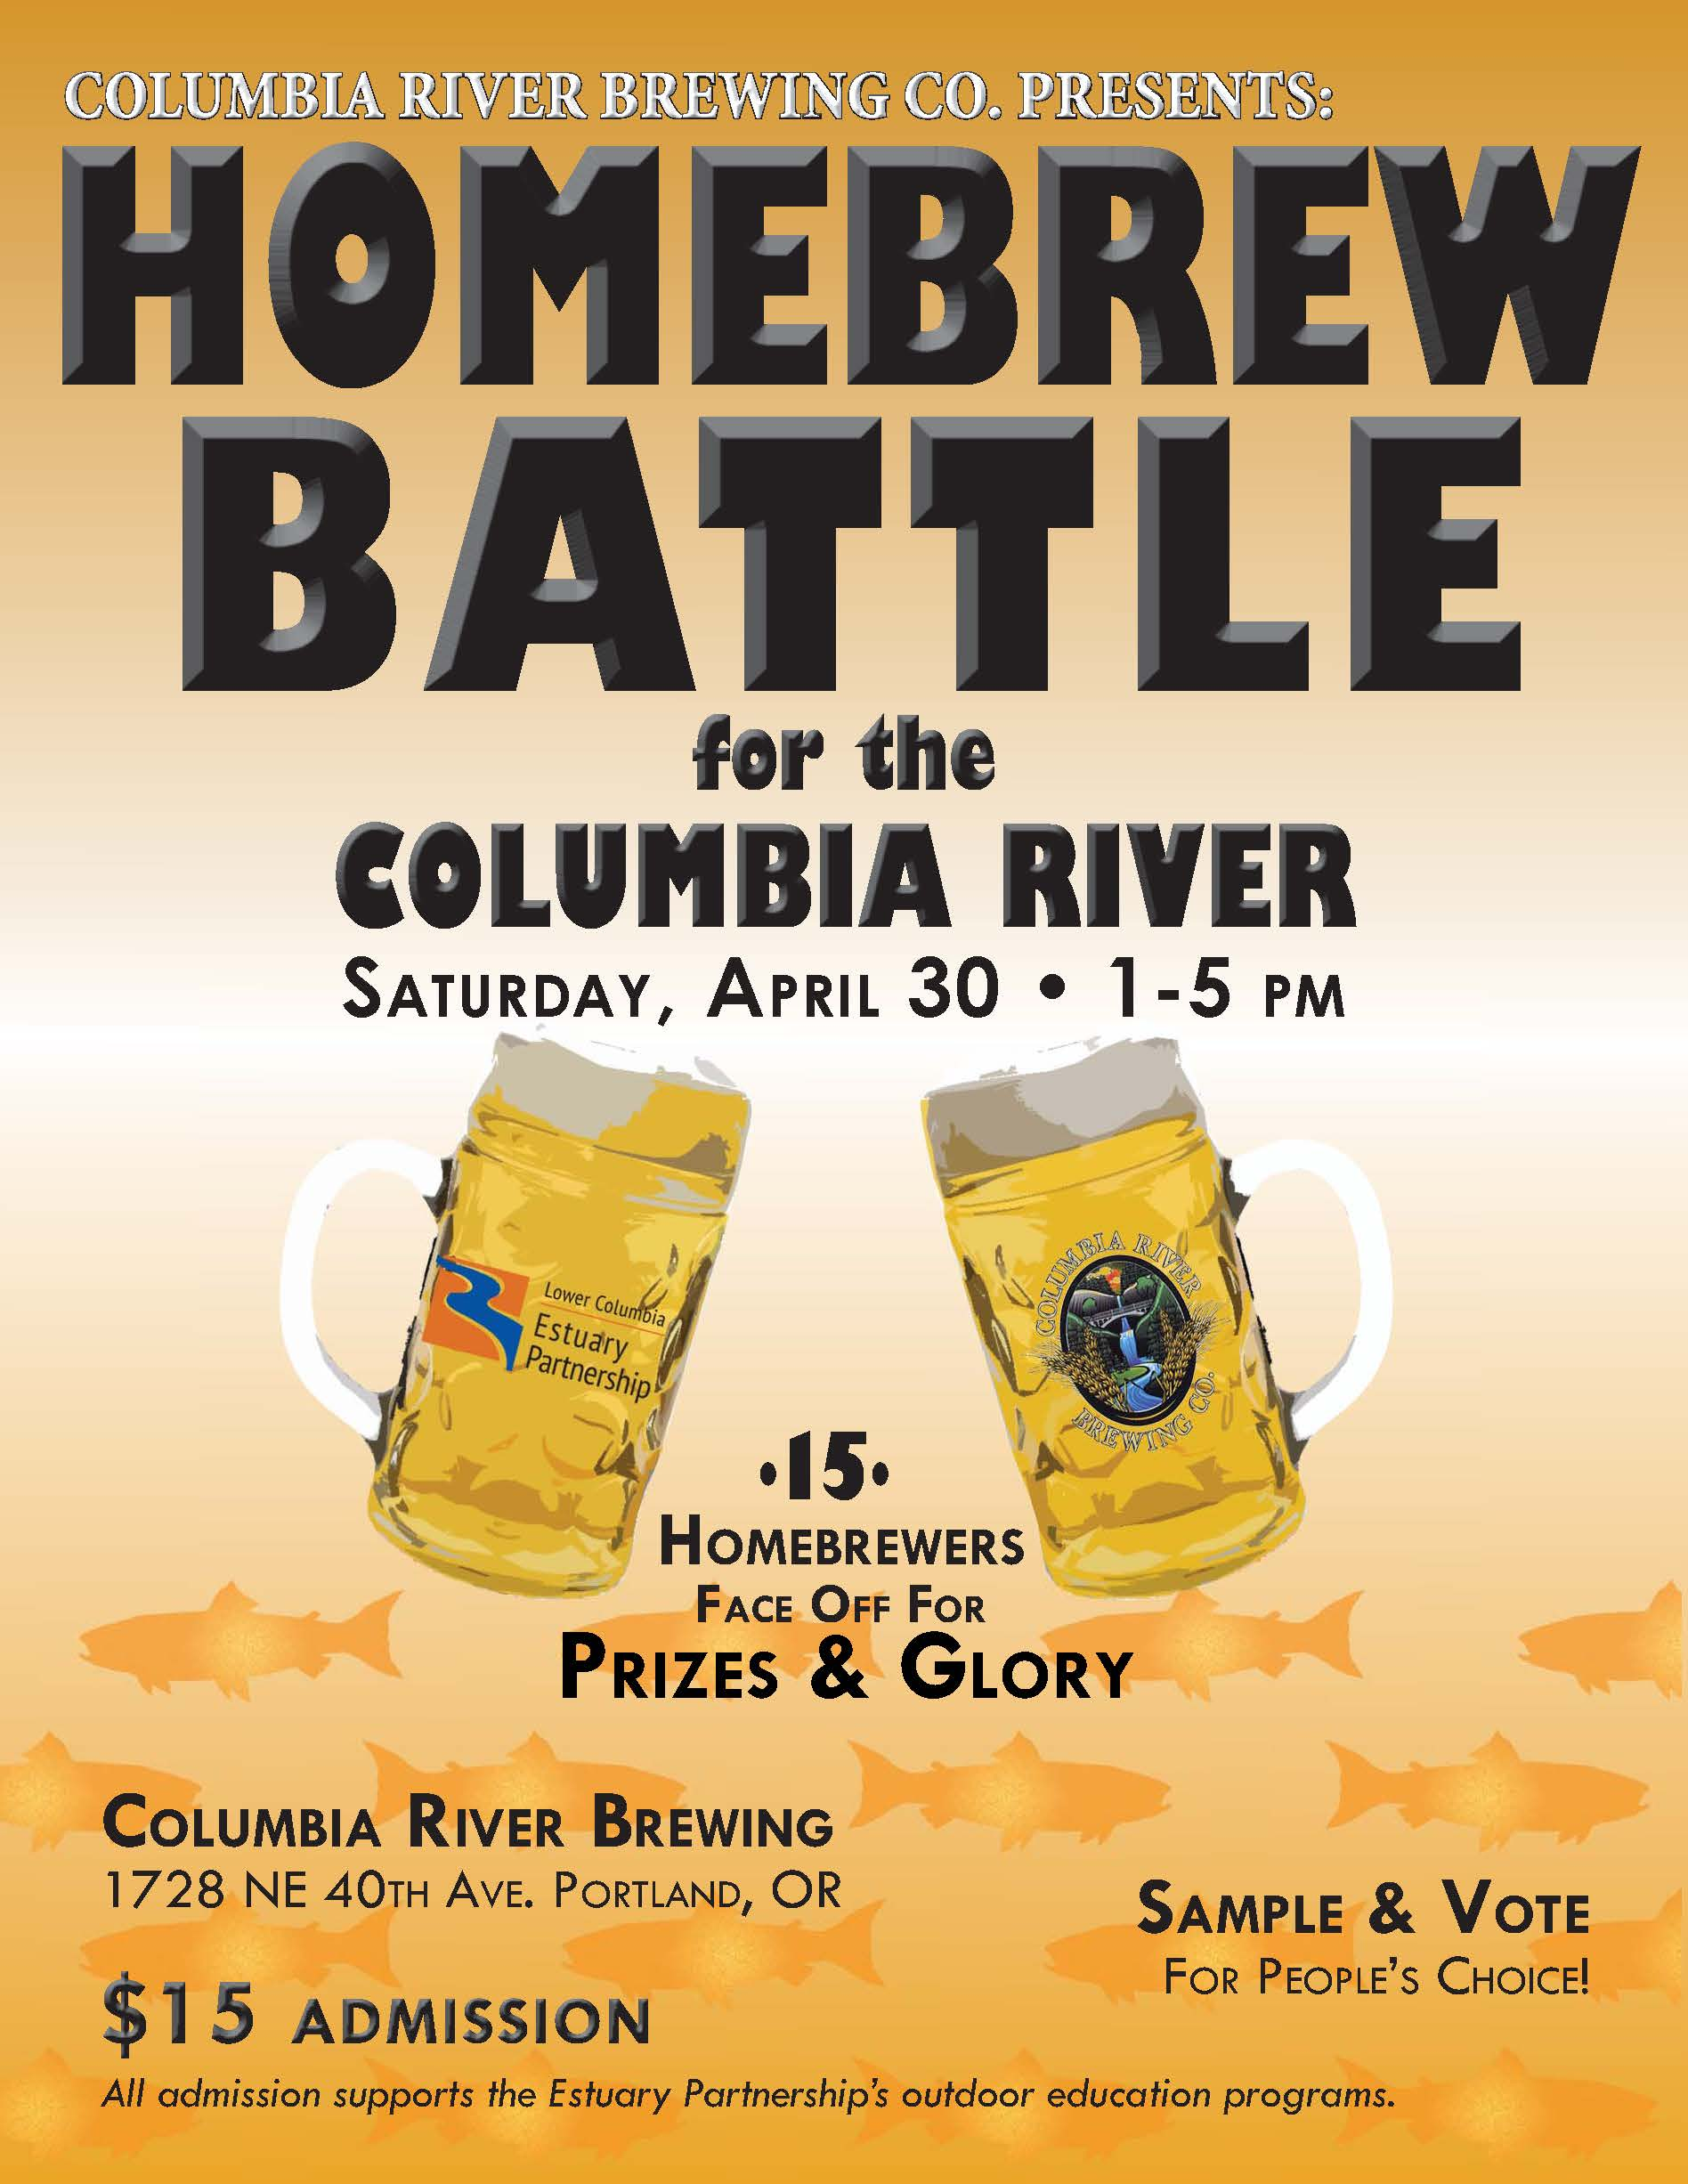 Homebrew Battle for the Columbia River Flyer 4.30.2016